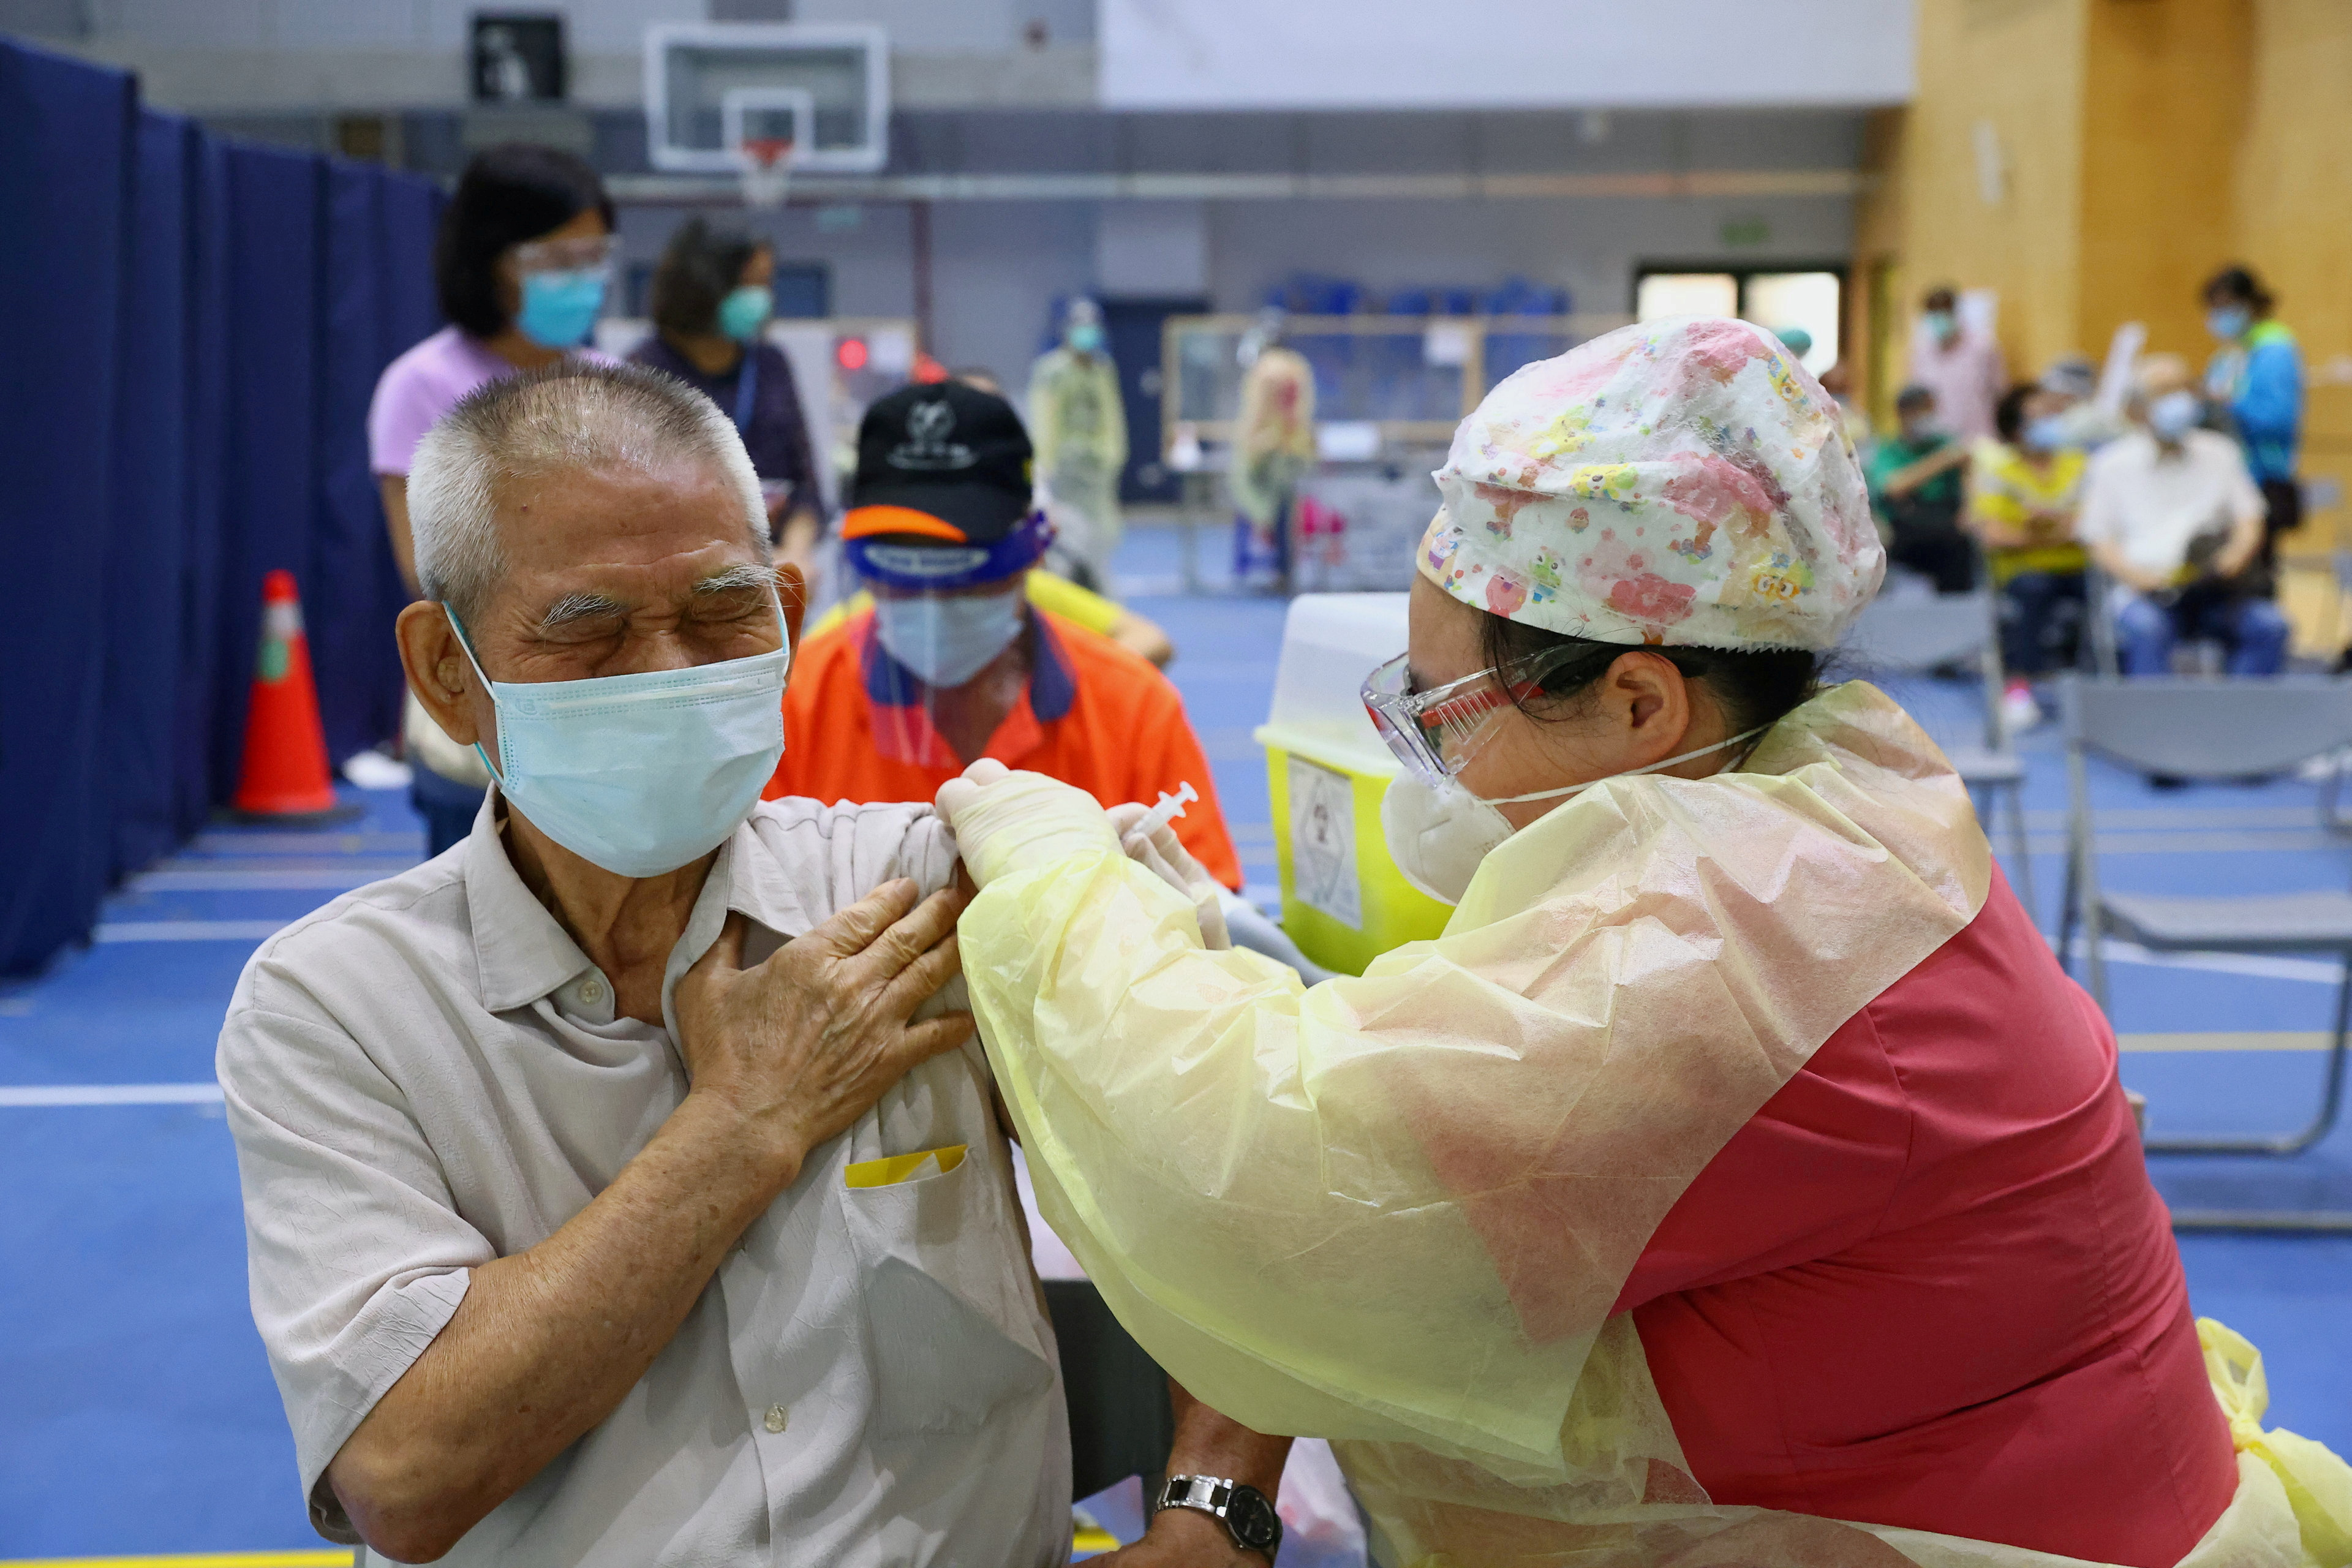 A medical worker administers a dose of the AstraZeneca vaccine against the coronavirus disease (COVID-19) to a man during a vaccination session for elderly people over 75 years old, at a stadium in New Taipei City, Taiwan June 25, 2021. REUTERS/Ann Wang/File Photo